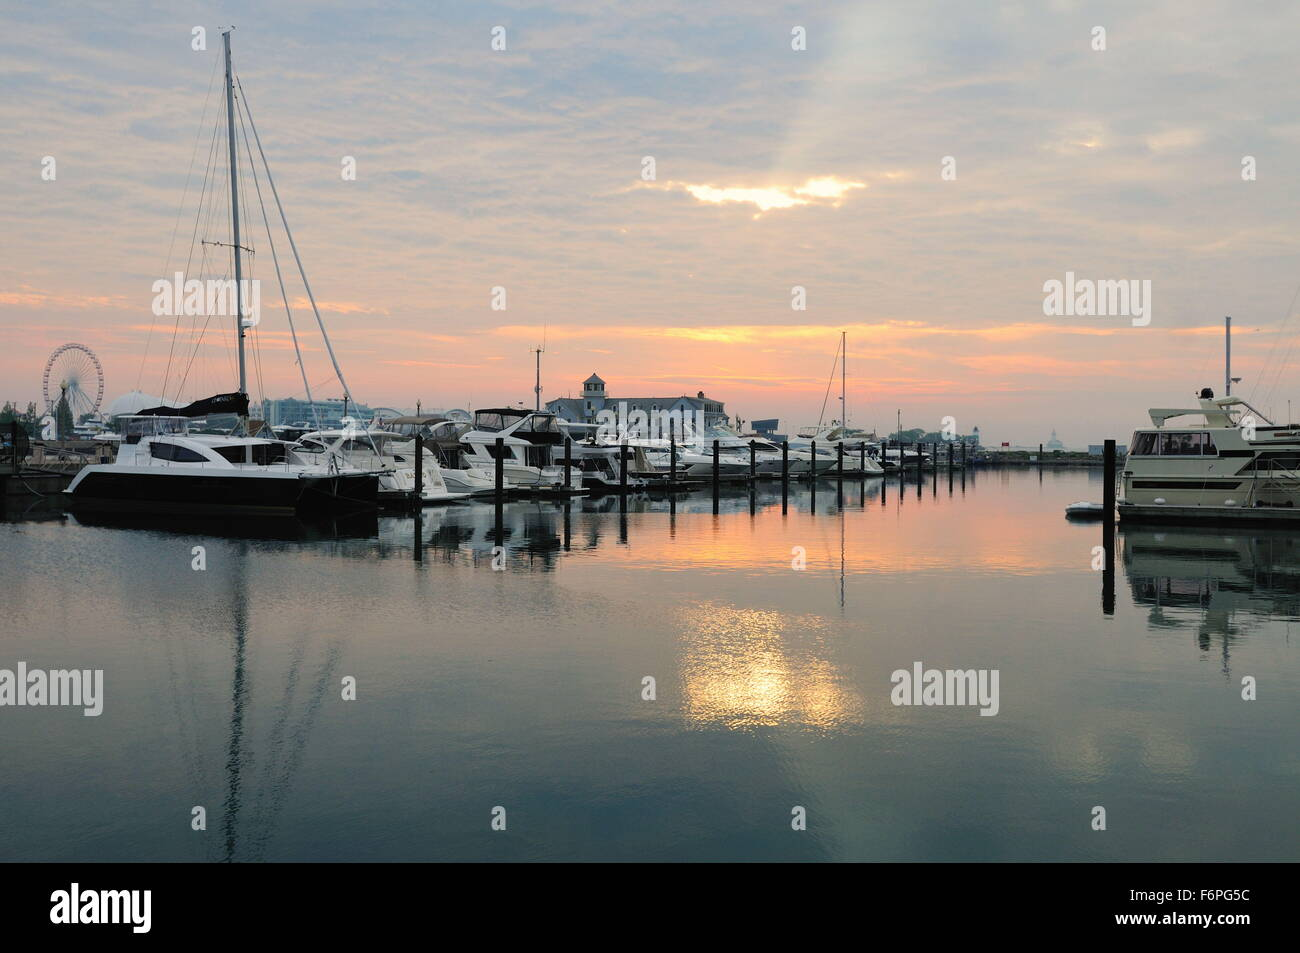 Not long after sunrise the sun attempts to break through cloud cover above pleasure craft in Chicago's DuSable - Stock Image